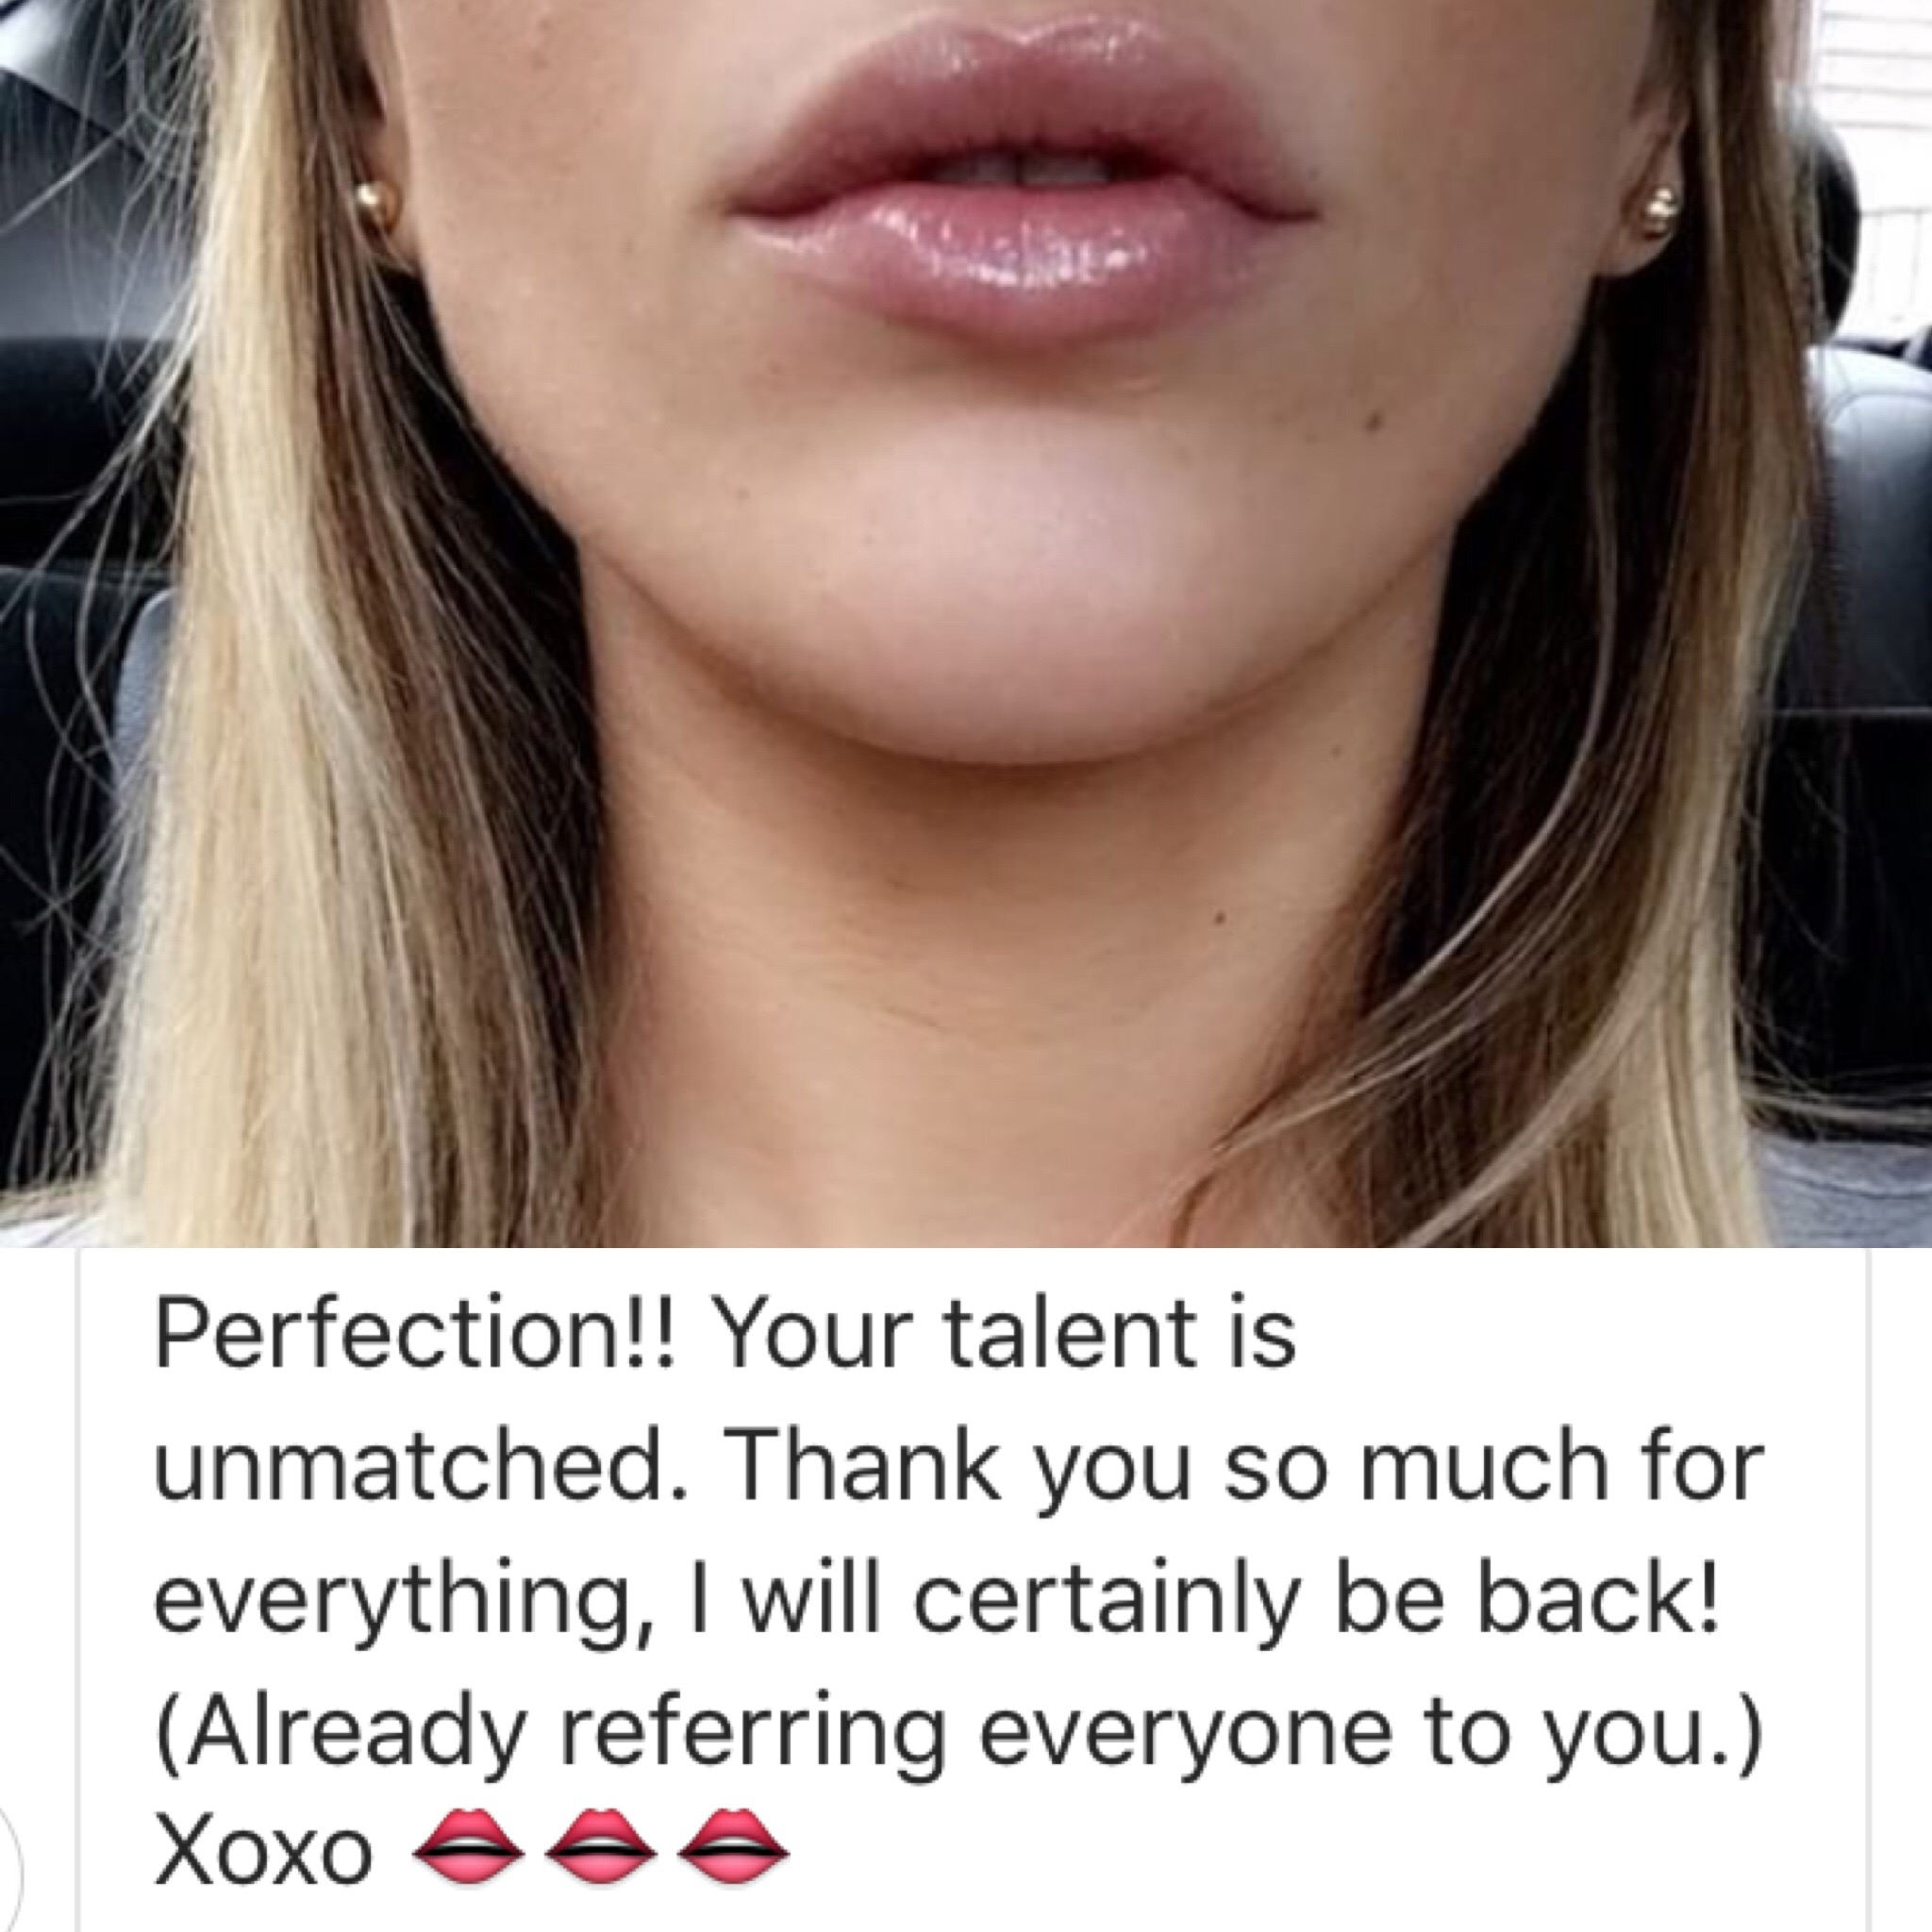 Message and photo from a lip augmentation patient, 7/2016